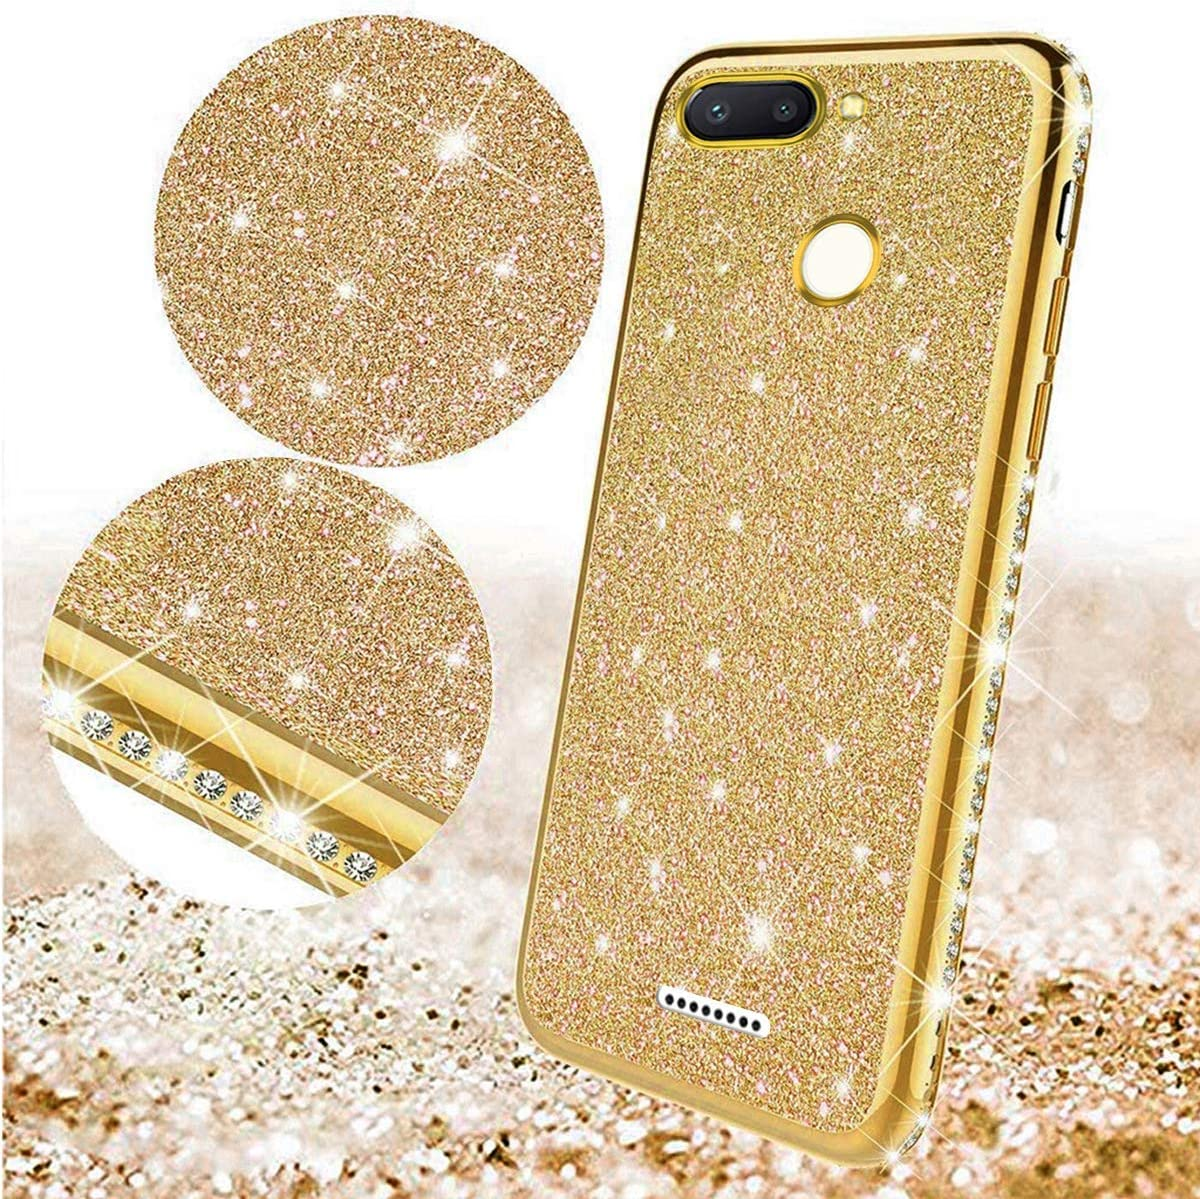 Herbests Compatible with Xiaomi Redmi 6 Case Glitter Cute Girl Women Bling Crystal Diamond Rhinestone Clear Protective Phone Case Cover Shockproof TPU Rubber Silicone Cover,Gold